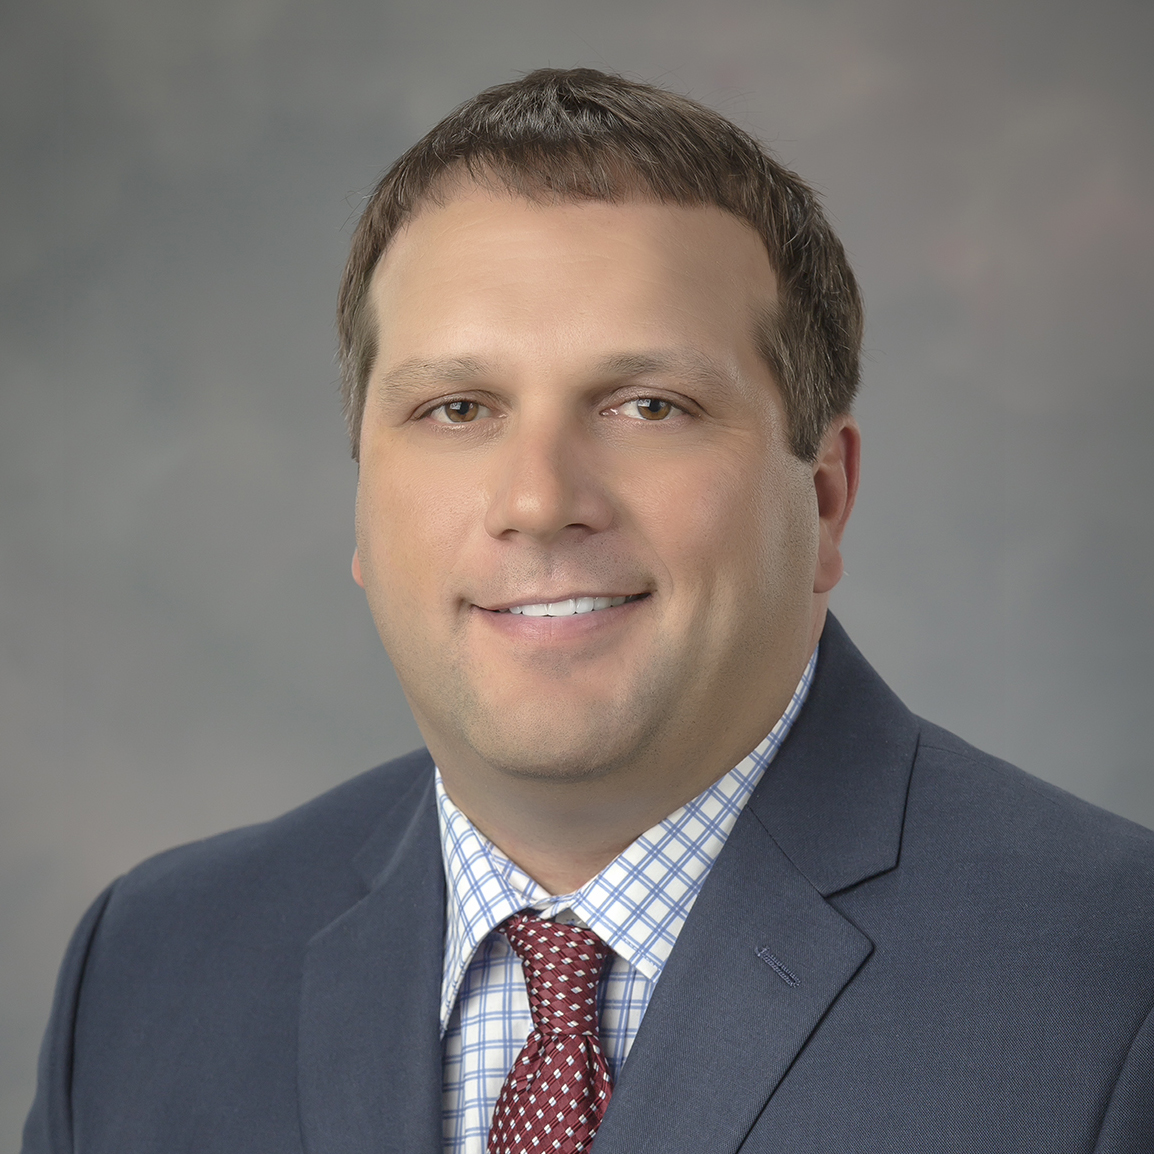 JEFFREY A. GOEGLEIN - Practice AreasBusiness Organizations, Mergers & Acquisitions, Taxation, Commercial Transactions, Real Estate, Employment, Private Equity, Securities